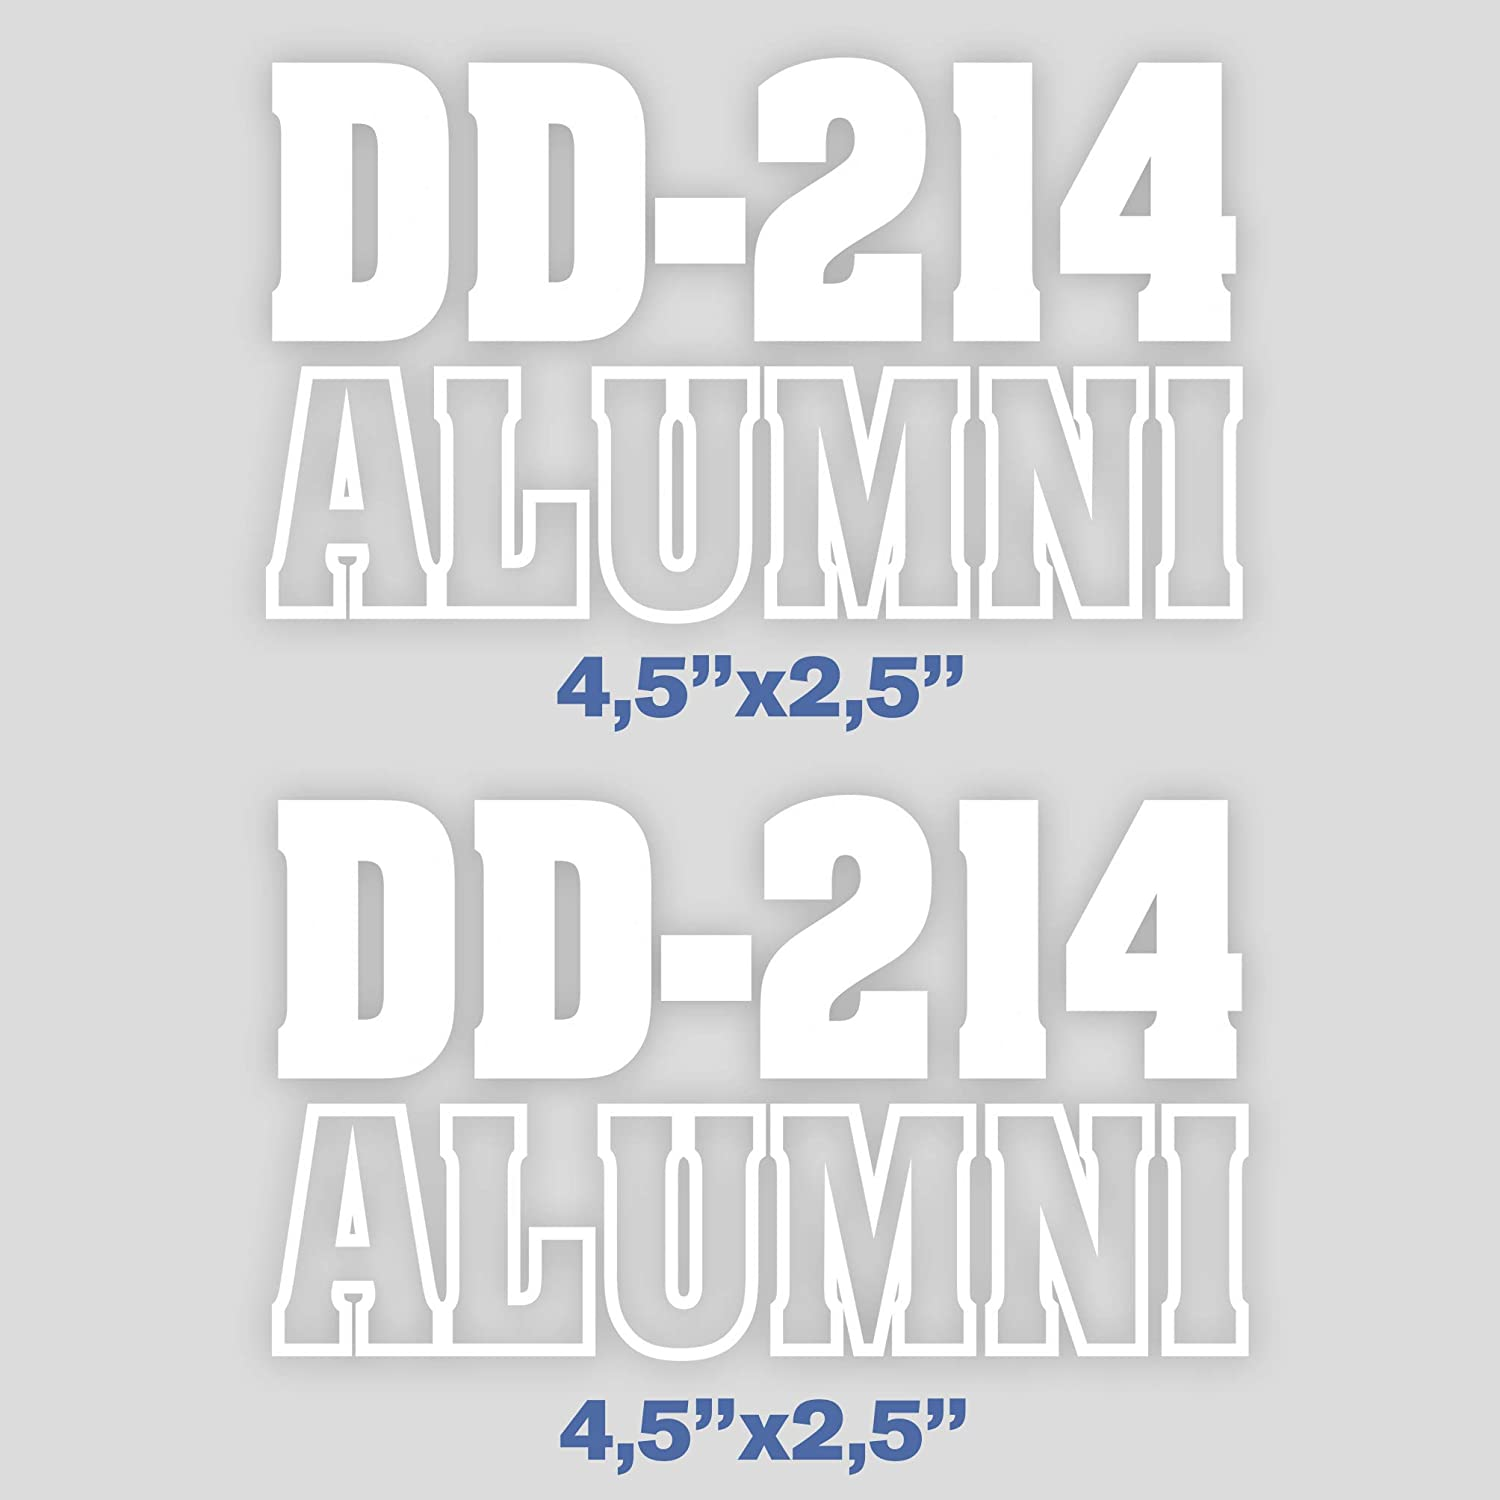 Set of 2 Decal DD-214 Alumni Sticker Release or Discharge U.S. Army Veteran for Car Bumper Laptop Vinyl Truck Military USA 4.5 in